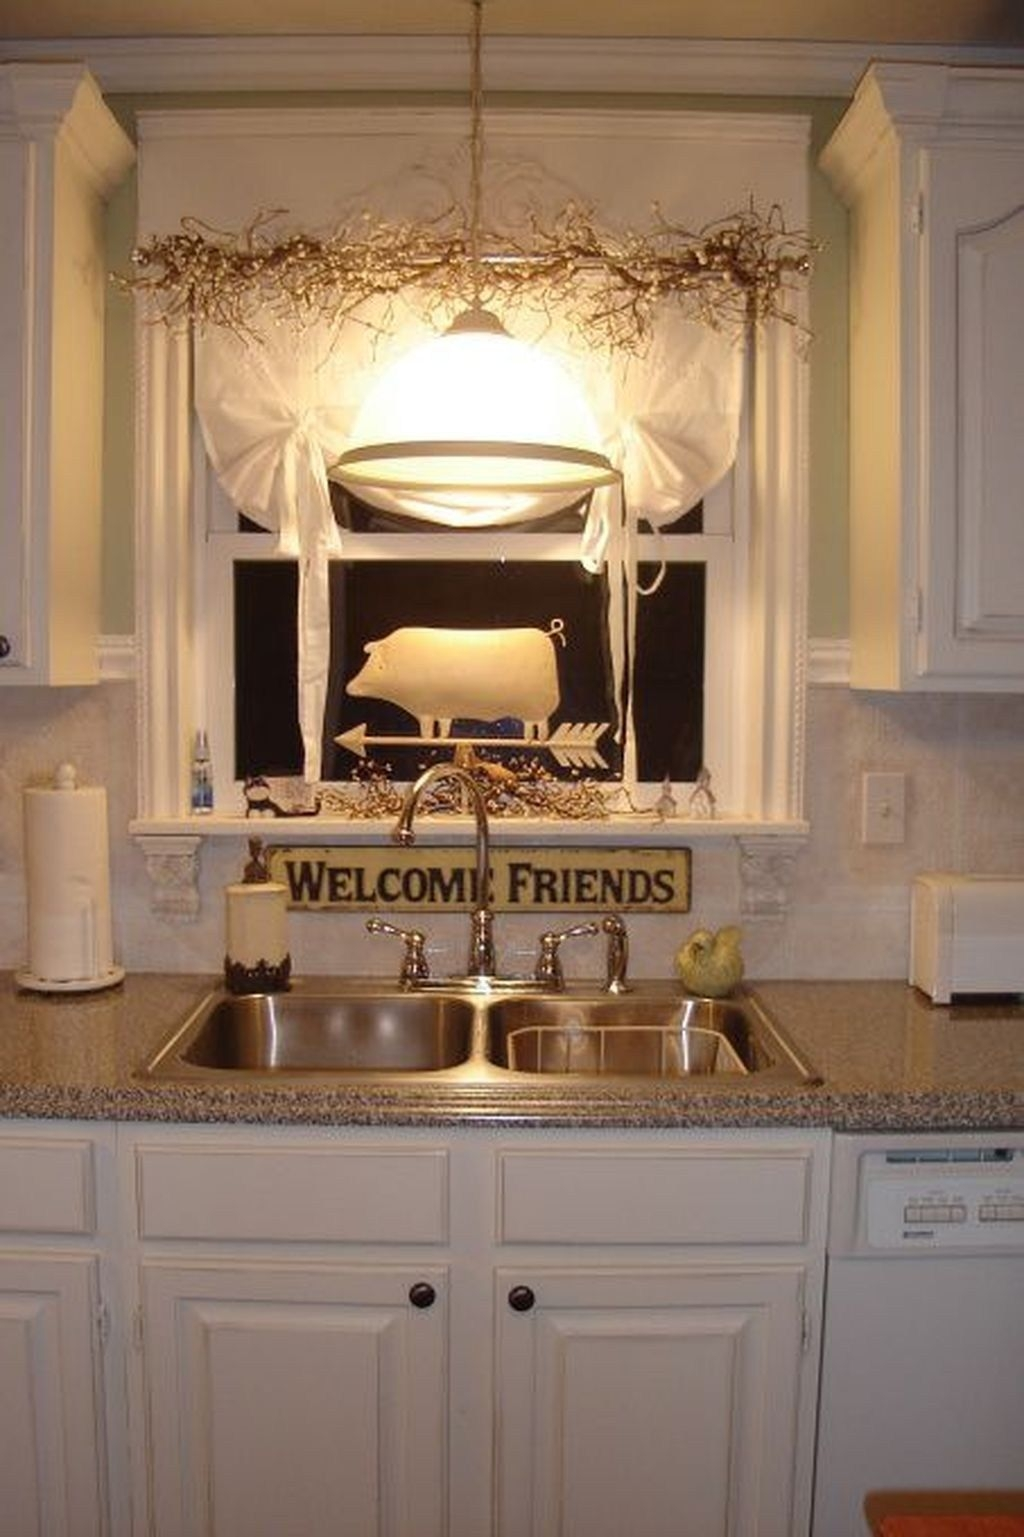 The Best French Country Style Kitchen Decor Ideas 19